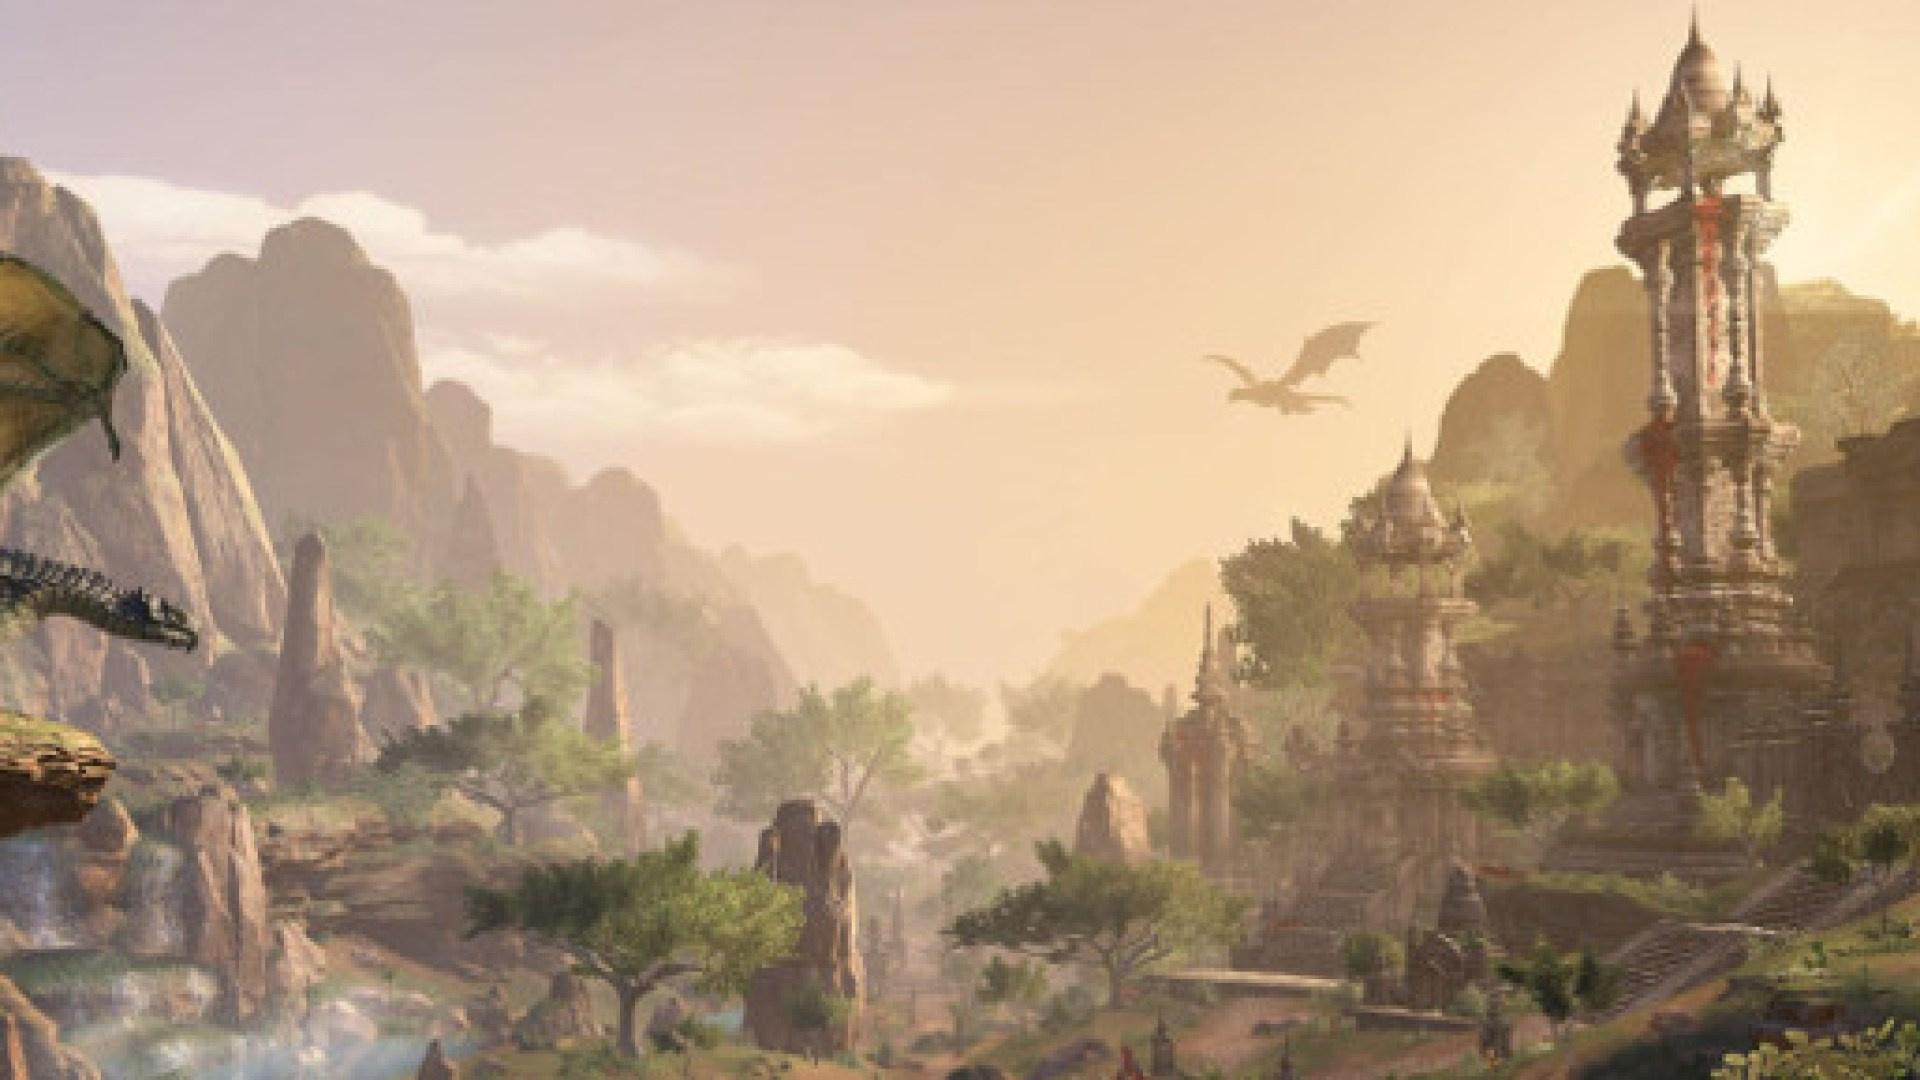 GDC 2019: The Elder Scrolls Online Sends Players to Adventure Elsweyr